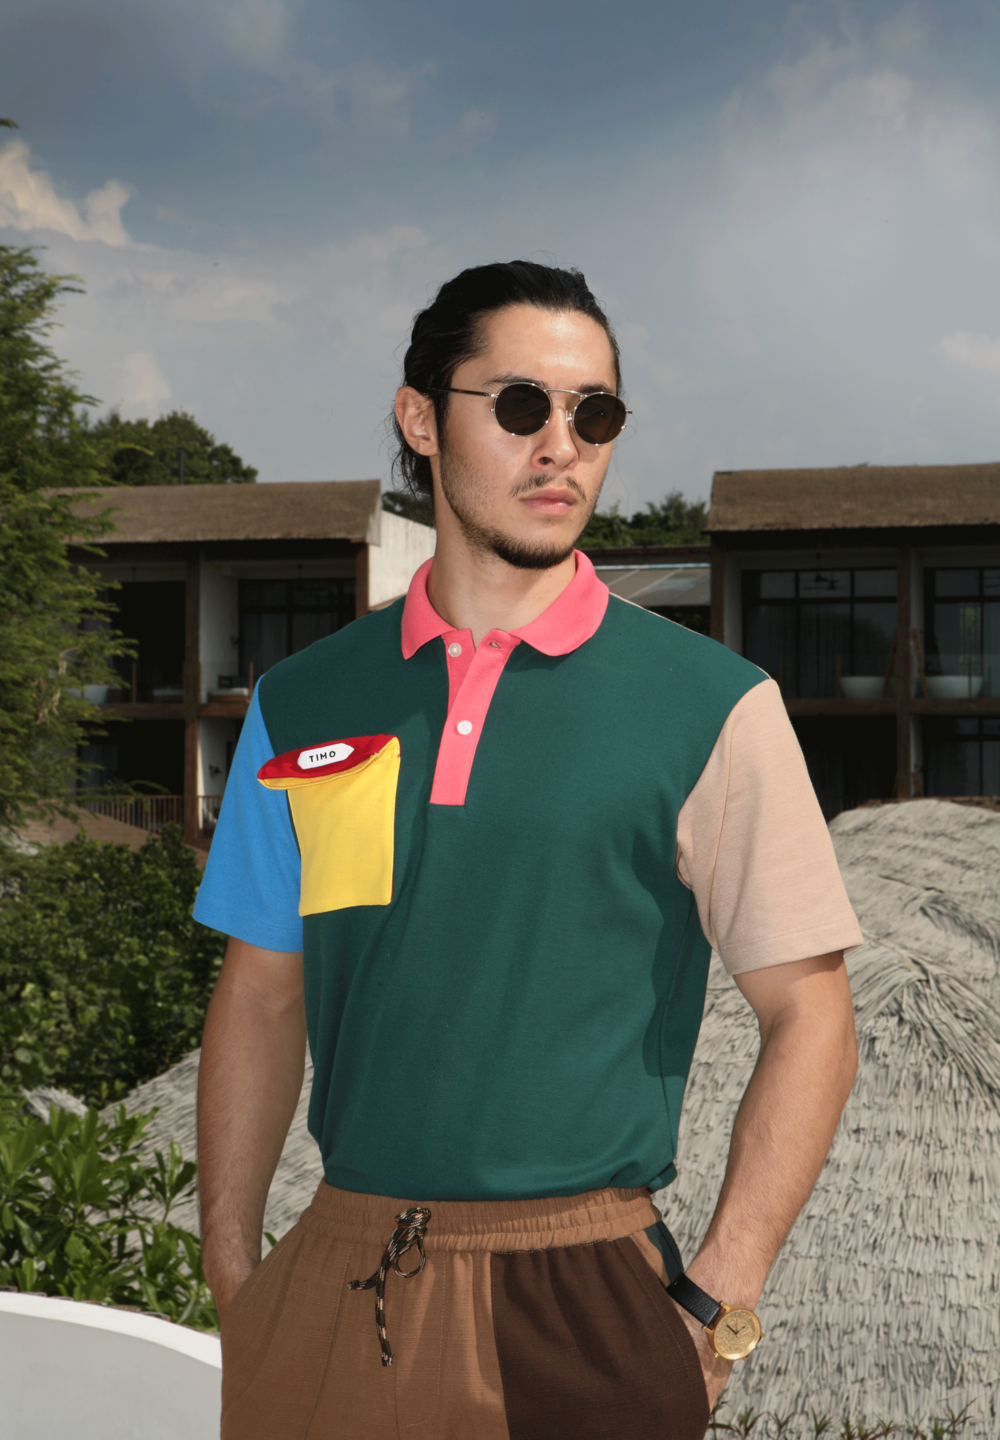 polo shirt : TIMO / pants : PAINKILLER / sunglasses : Boston Club / watch : FORREST